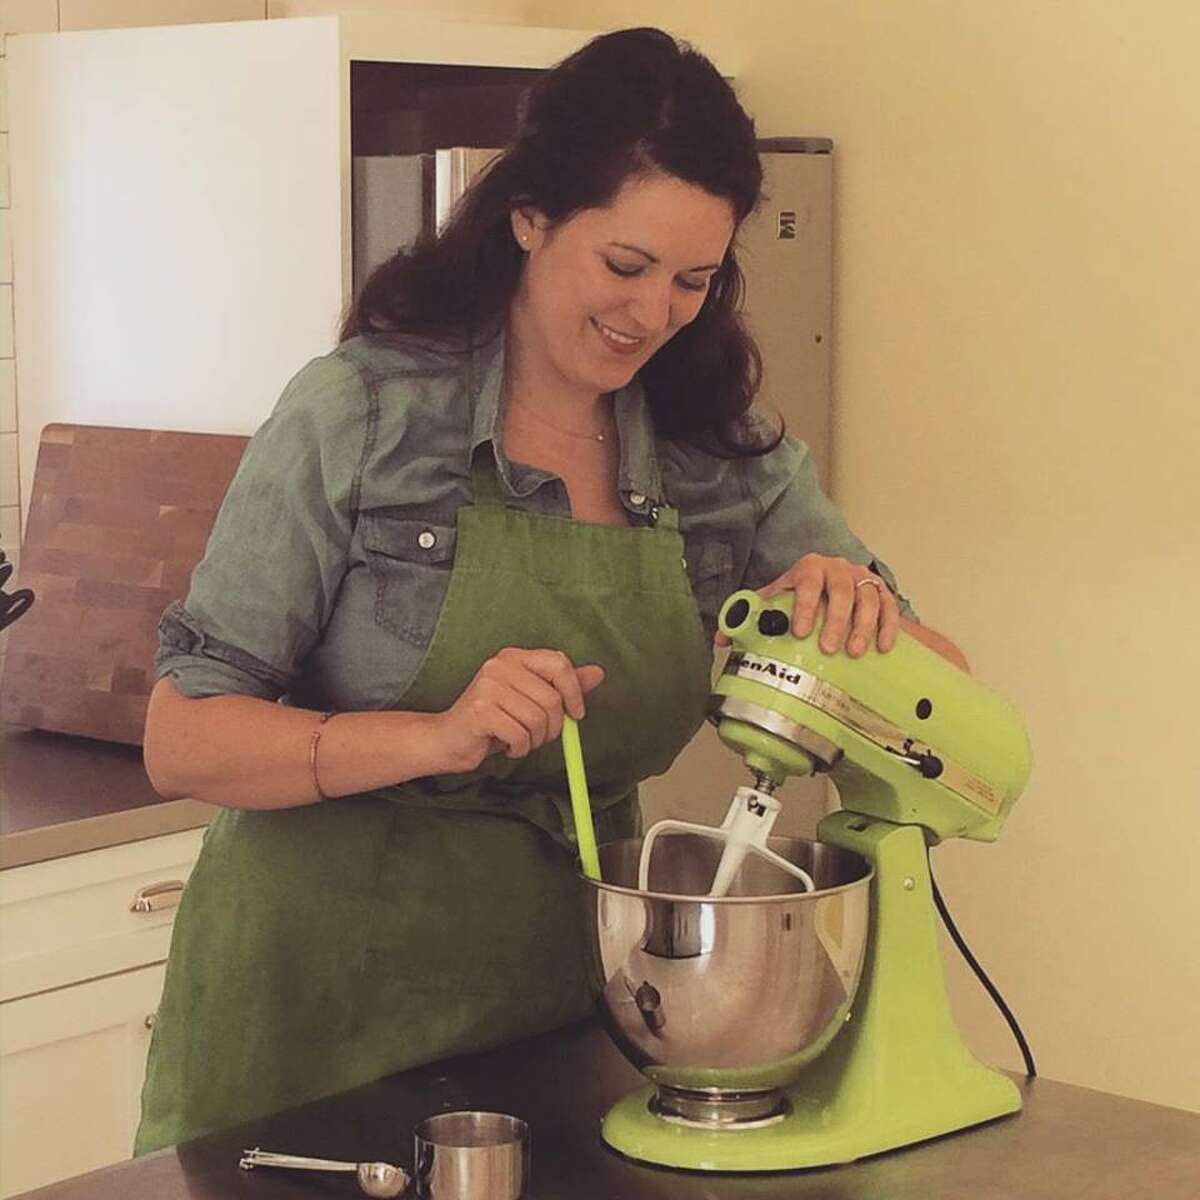 Freelance food and agriculture writer Deanna Fox asked Capital Region chefs and bloggers for their favorite kitchen hacks. Read the full story here. Click through the photos to see what they had to say.